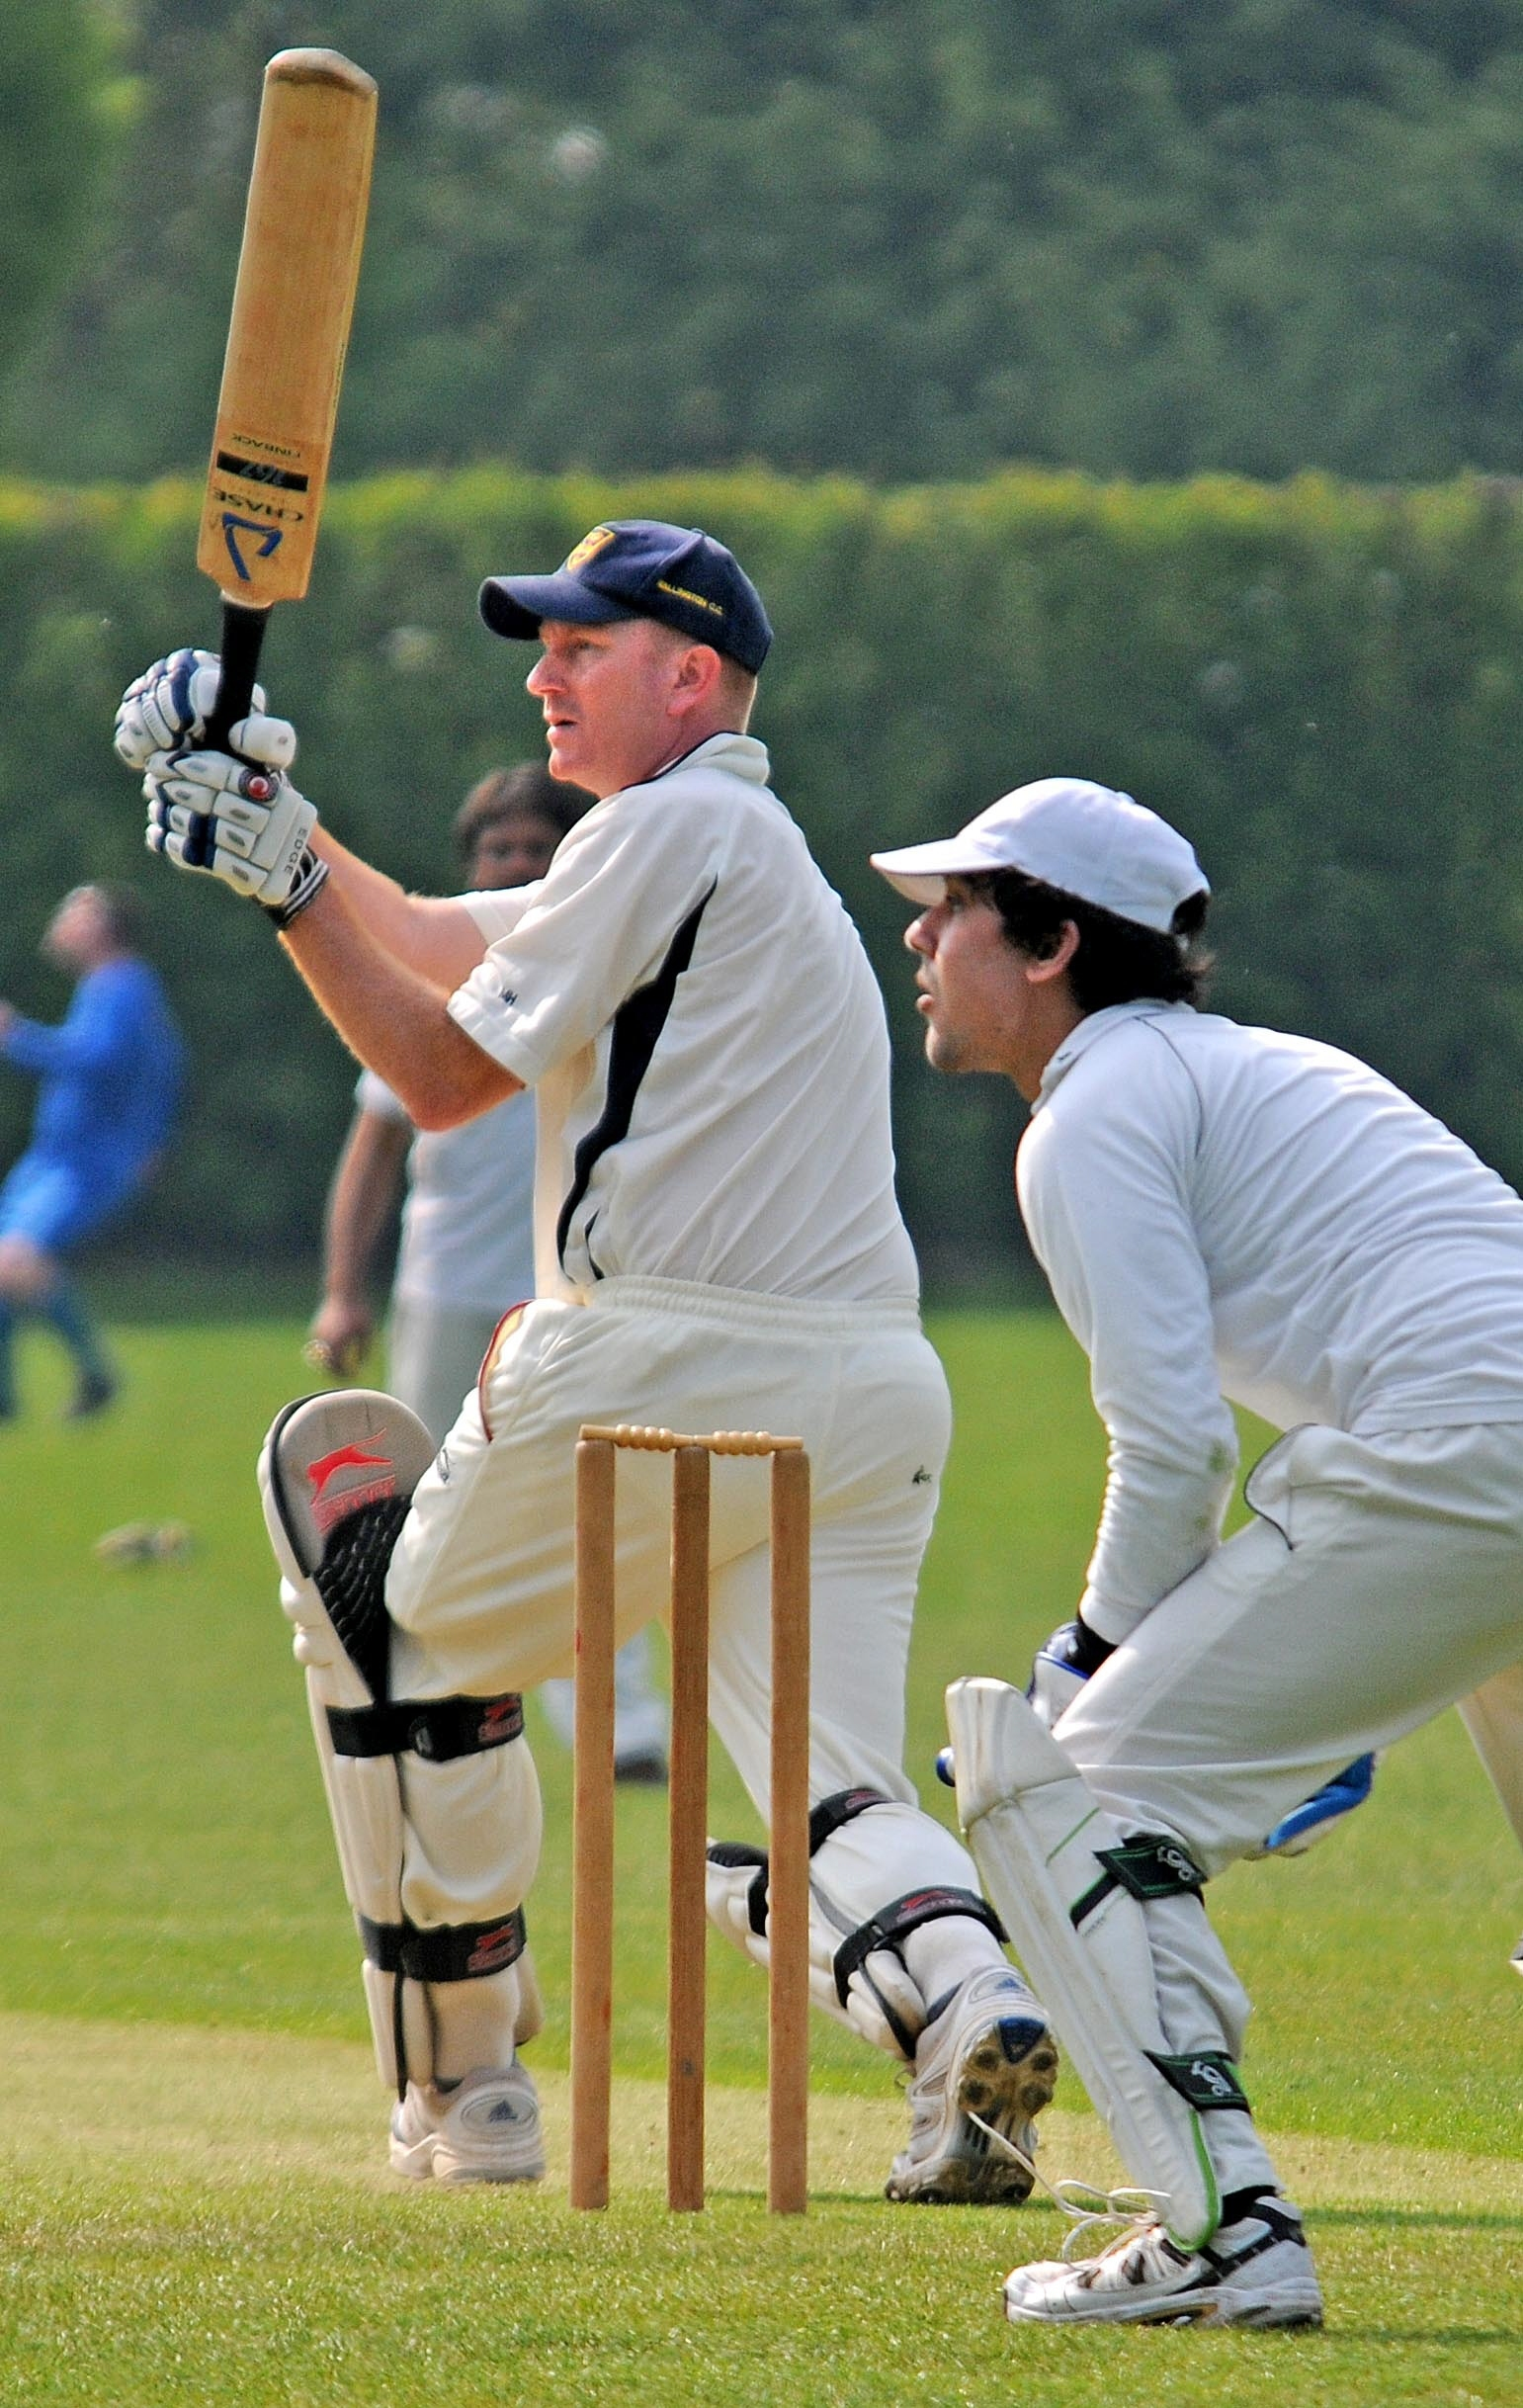 Ovington's victory at  Burn turns up heat on Vale League title rivals